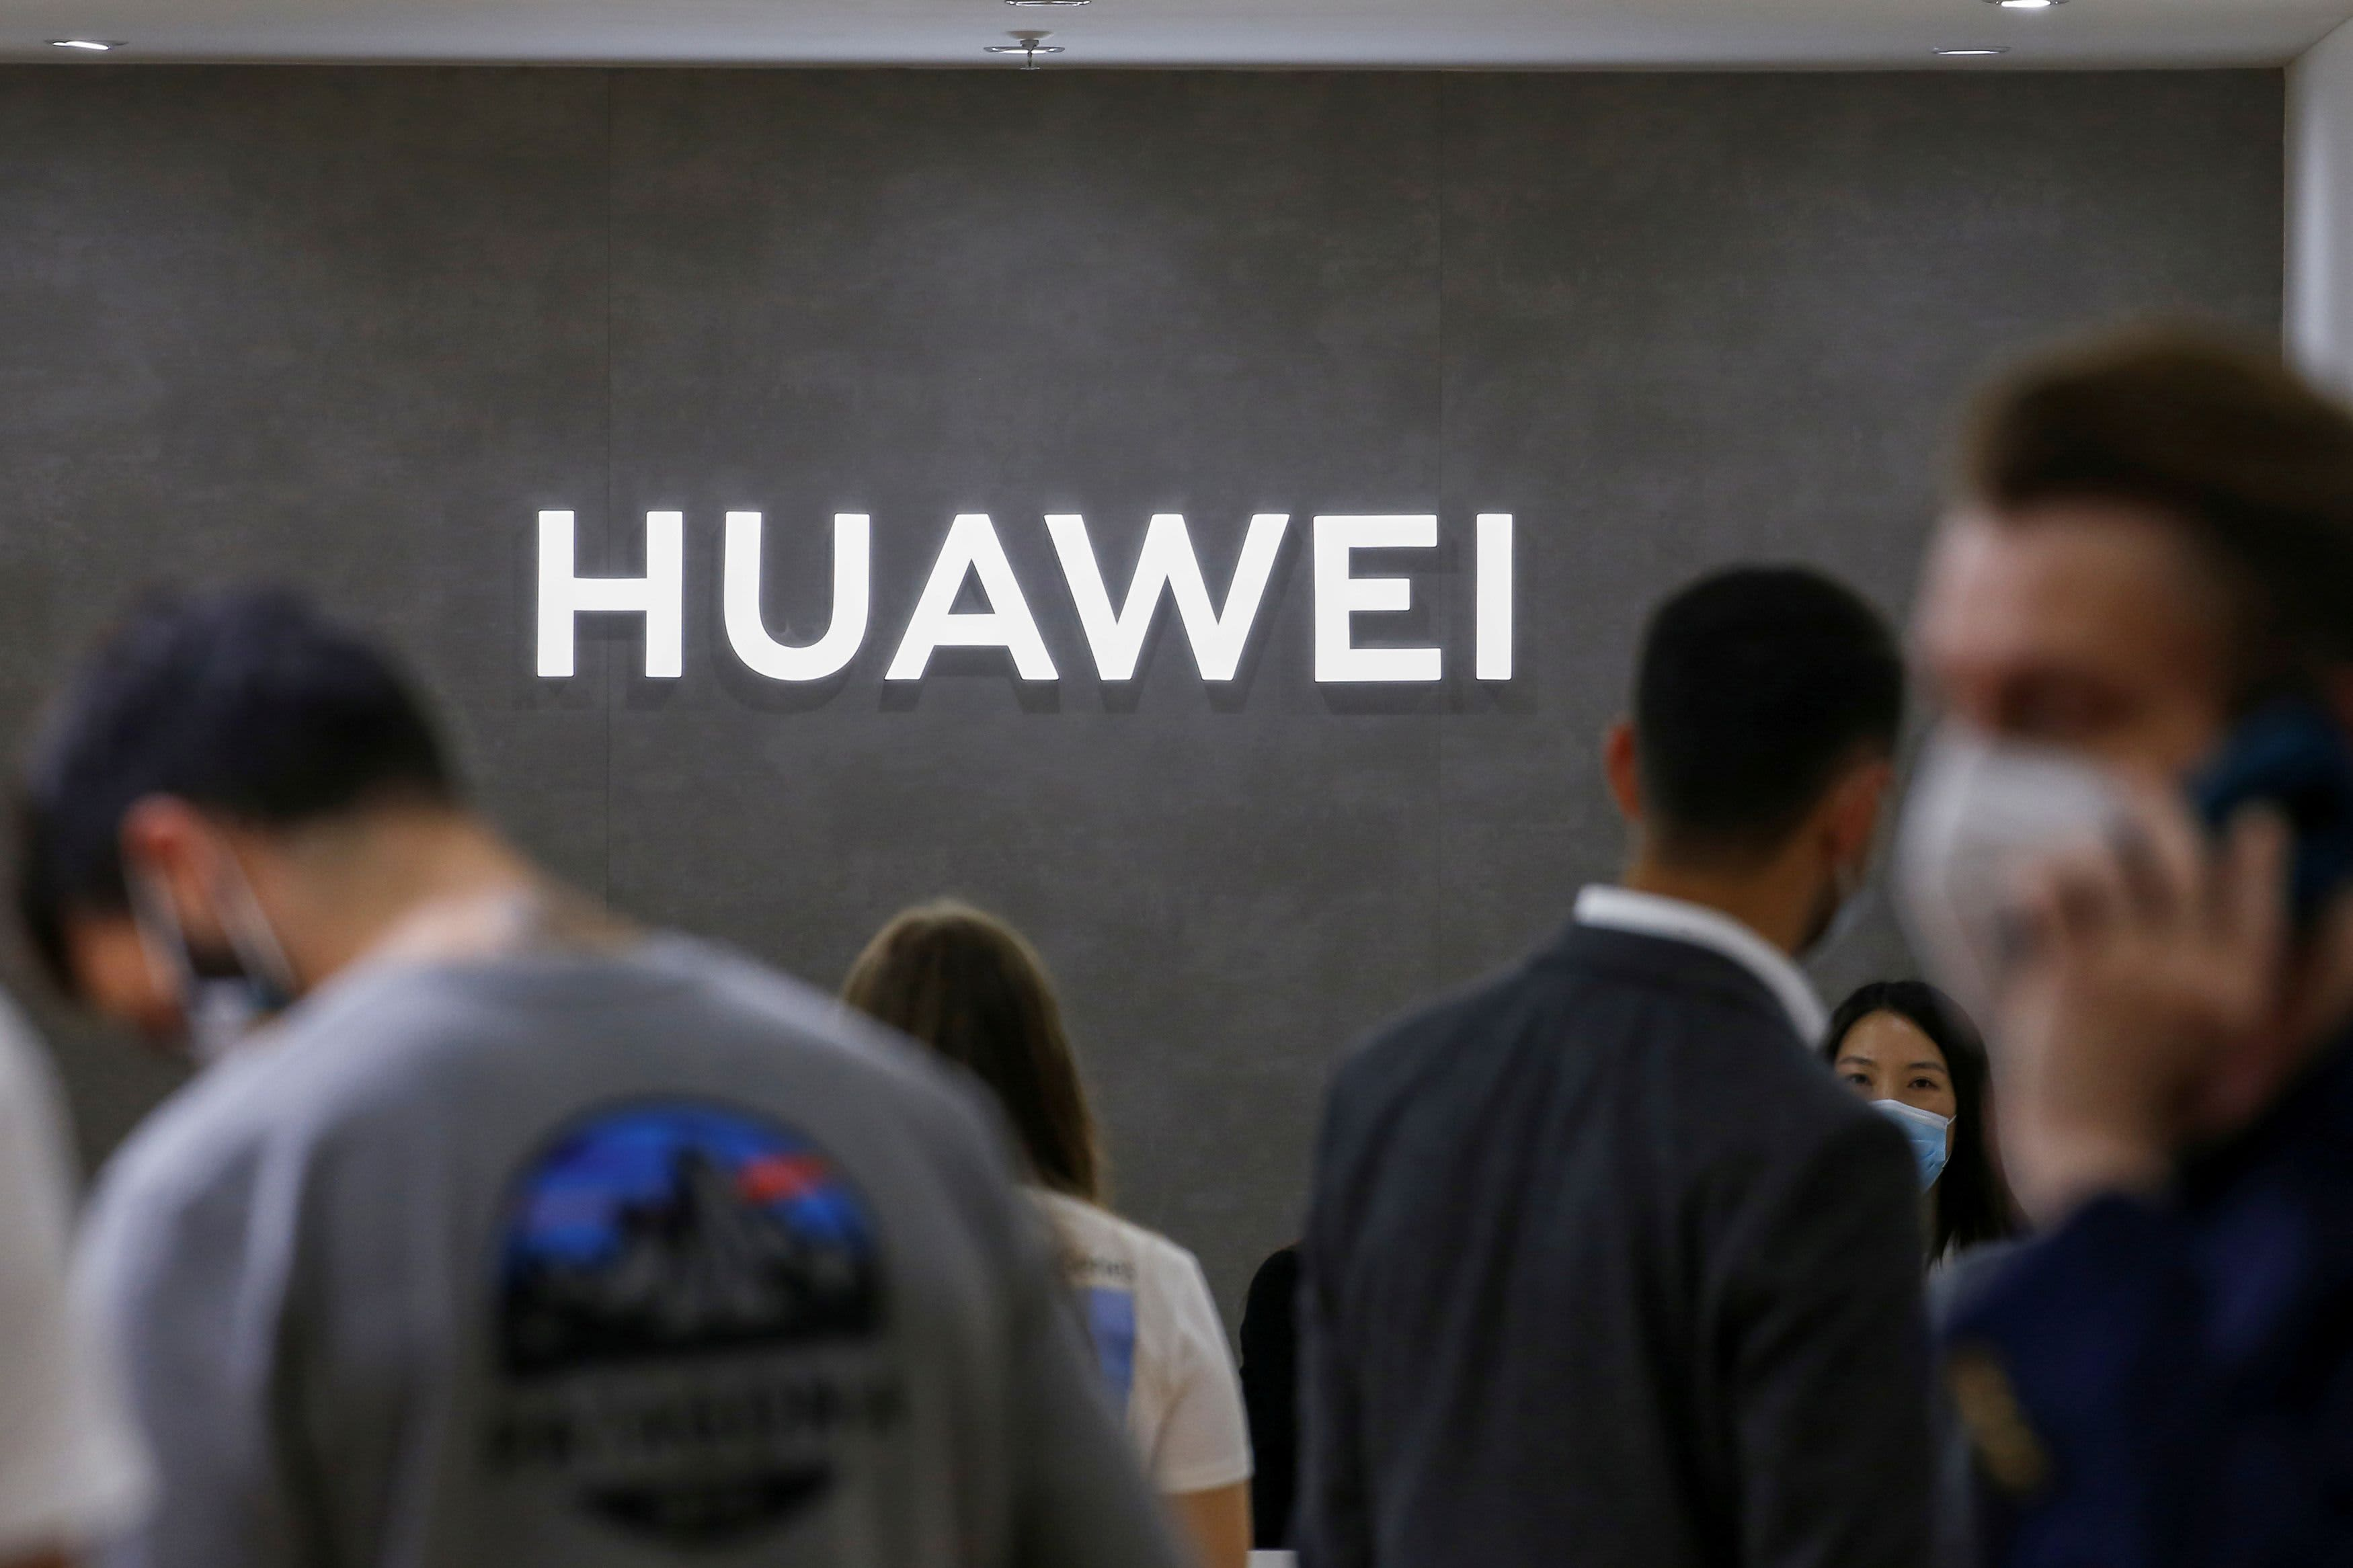 Huawei pivots to software with Google-like ambitions as U.S. sanctions hit hardware business